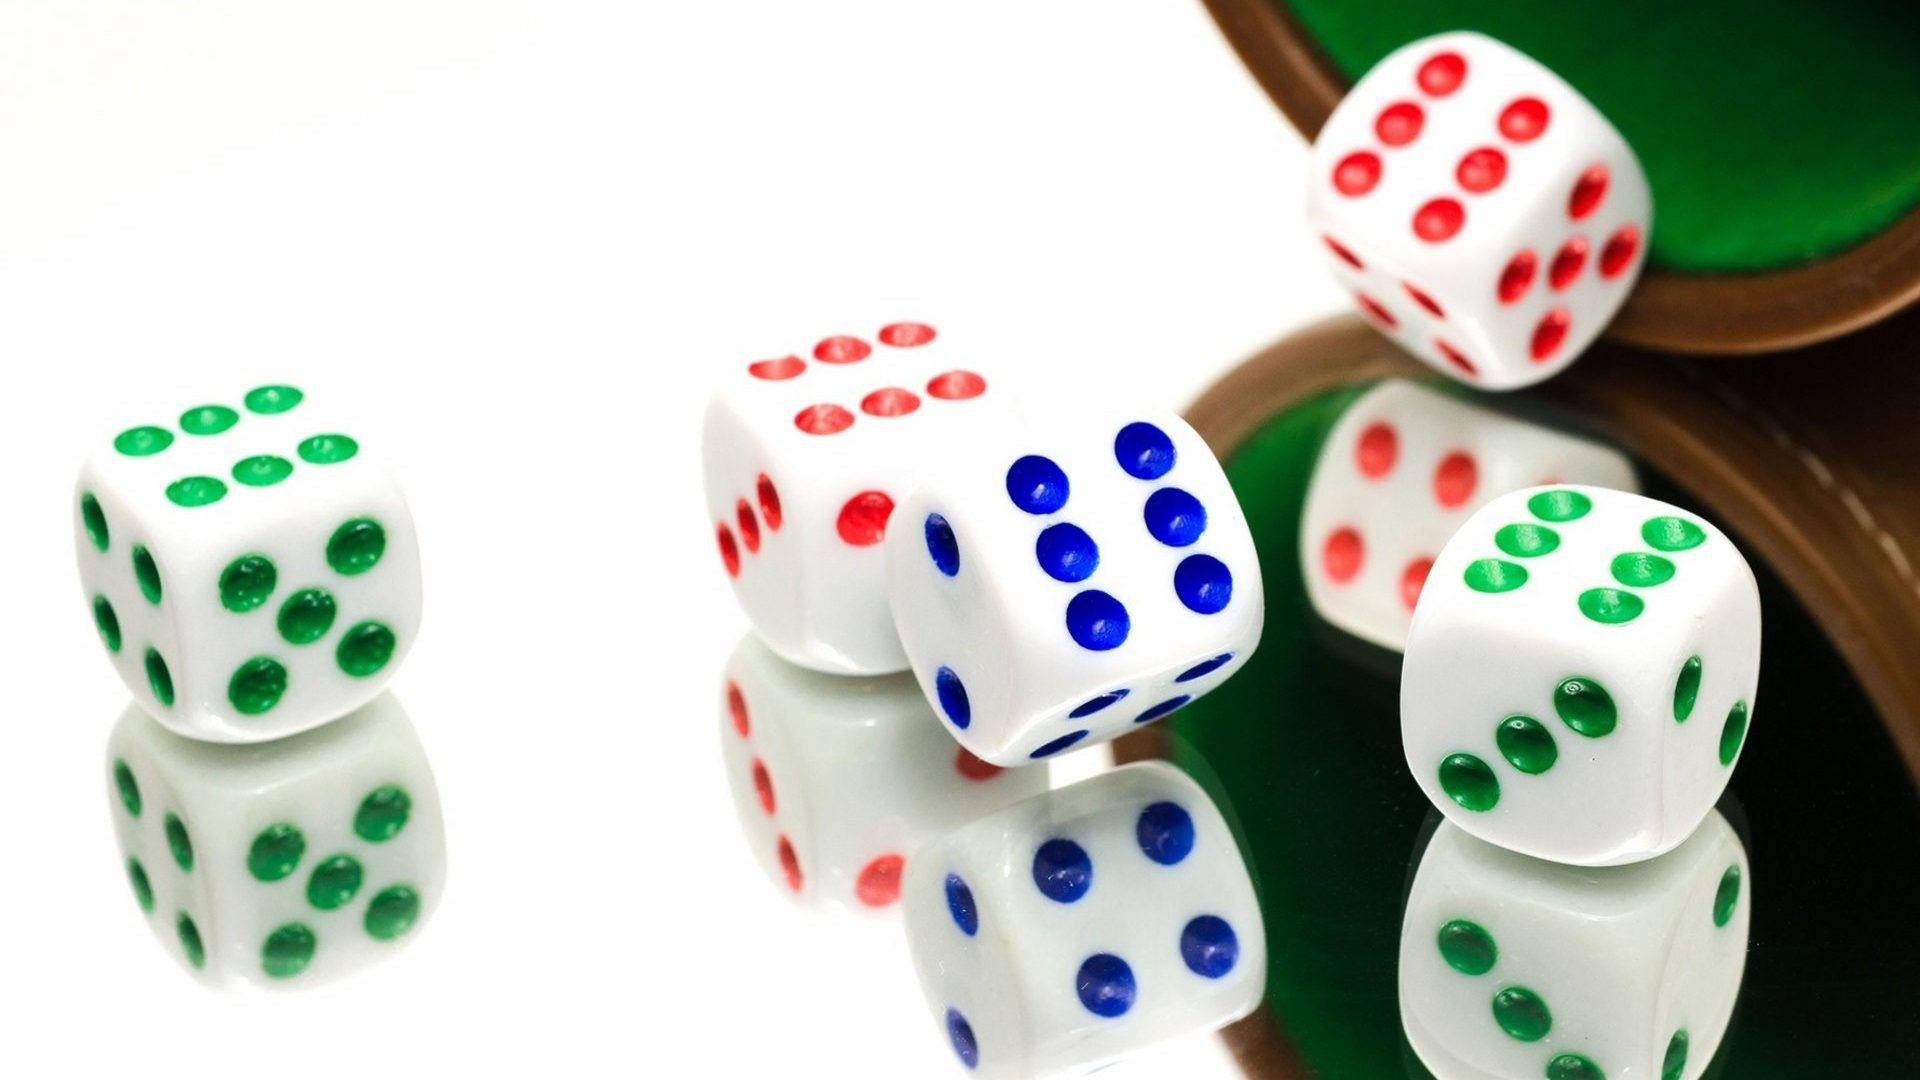 1920x1080 75+ Dice Wallpapers on WallpaperPlay